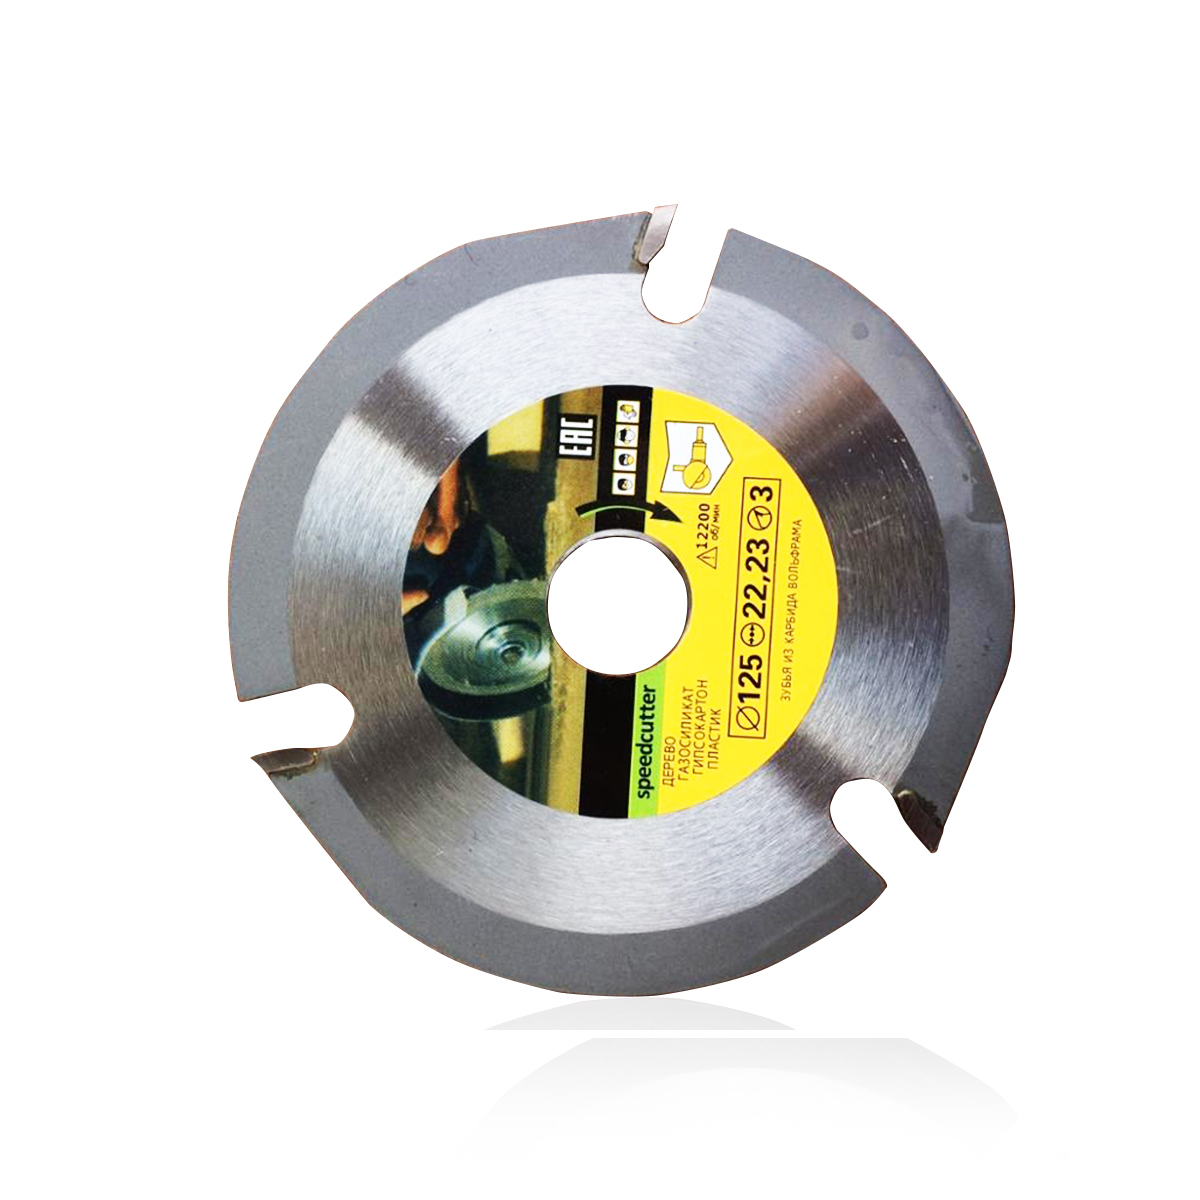 Drillpro 125mm 3 T Circular Saw Blade Multitool Grinder Saw Disc Carbide Tipped Wood Cutting Disc